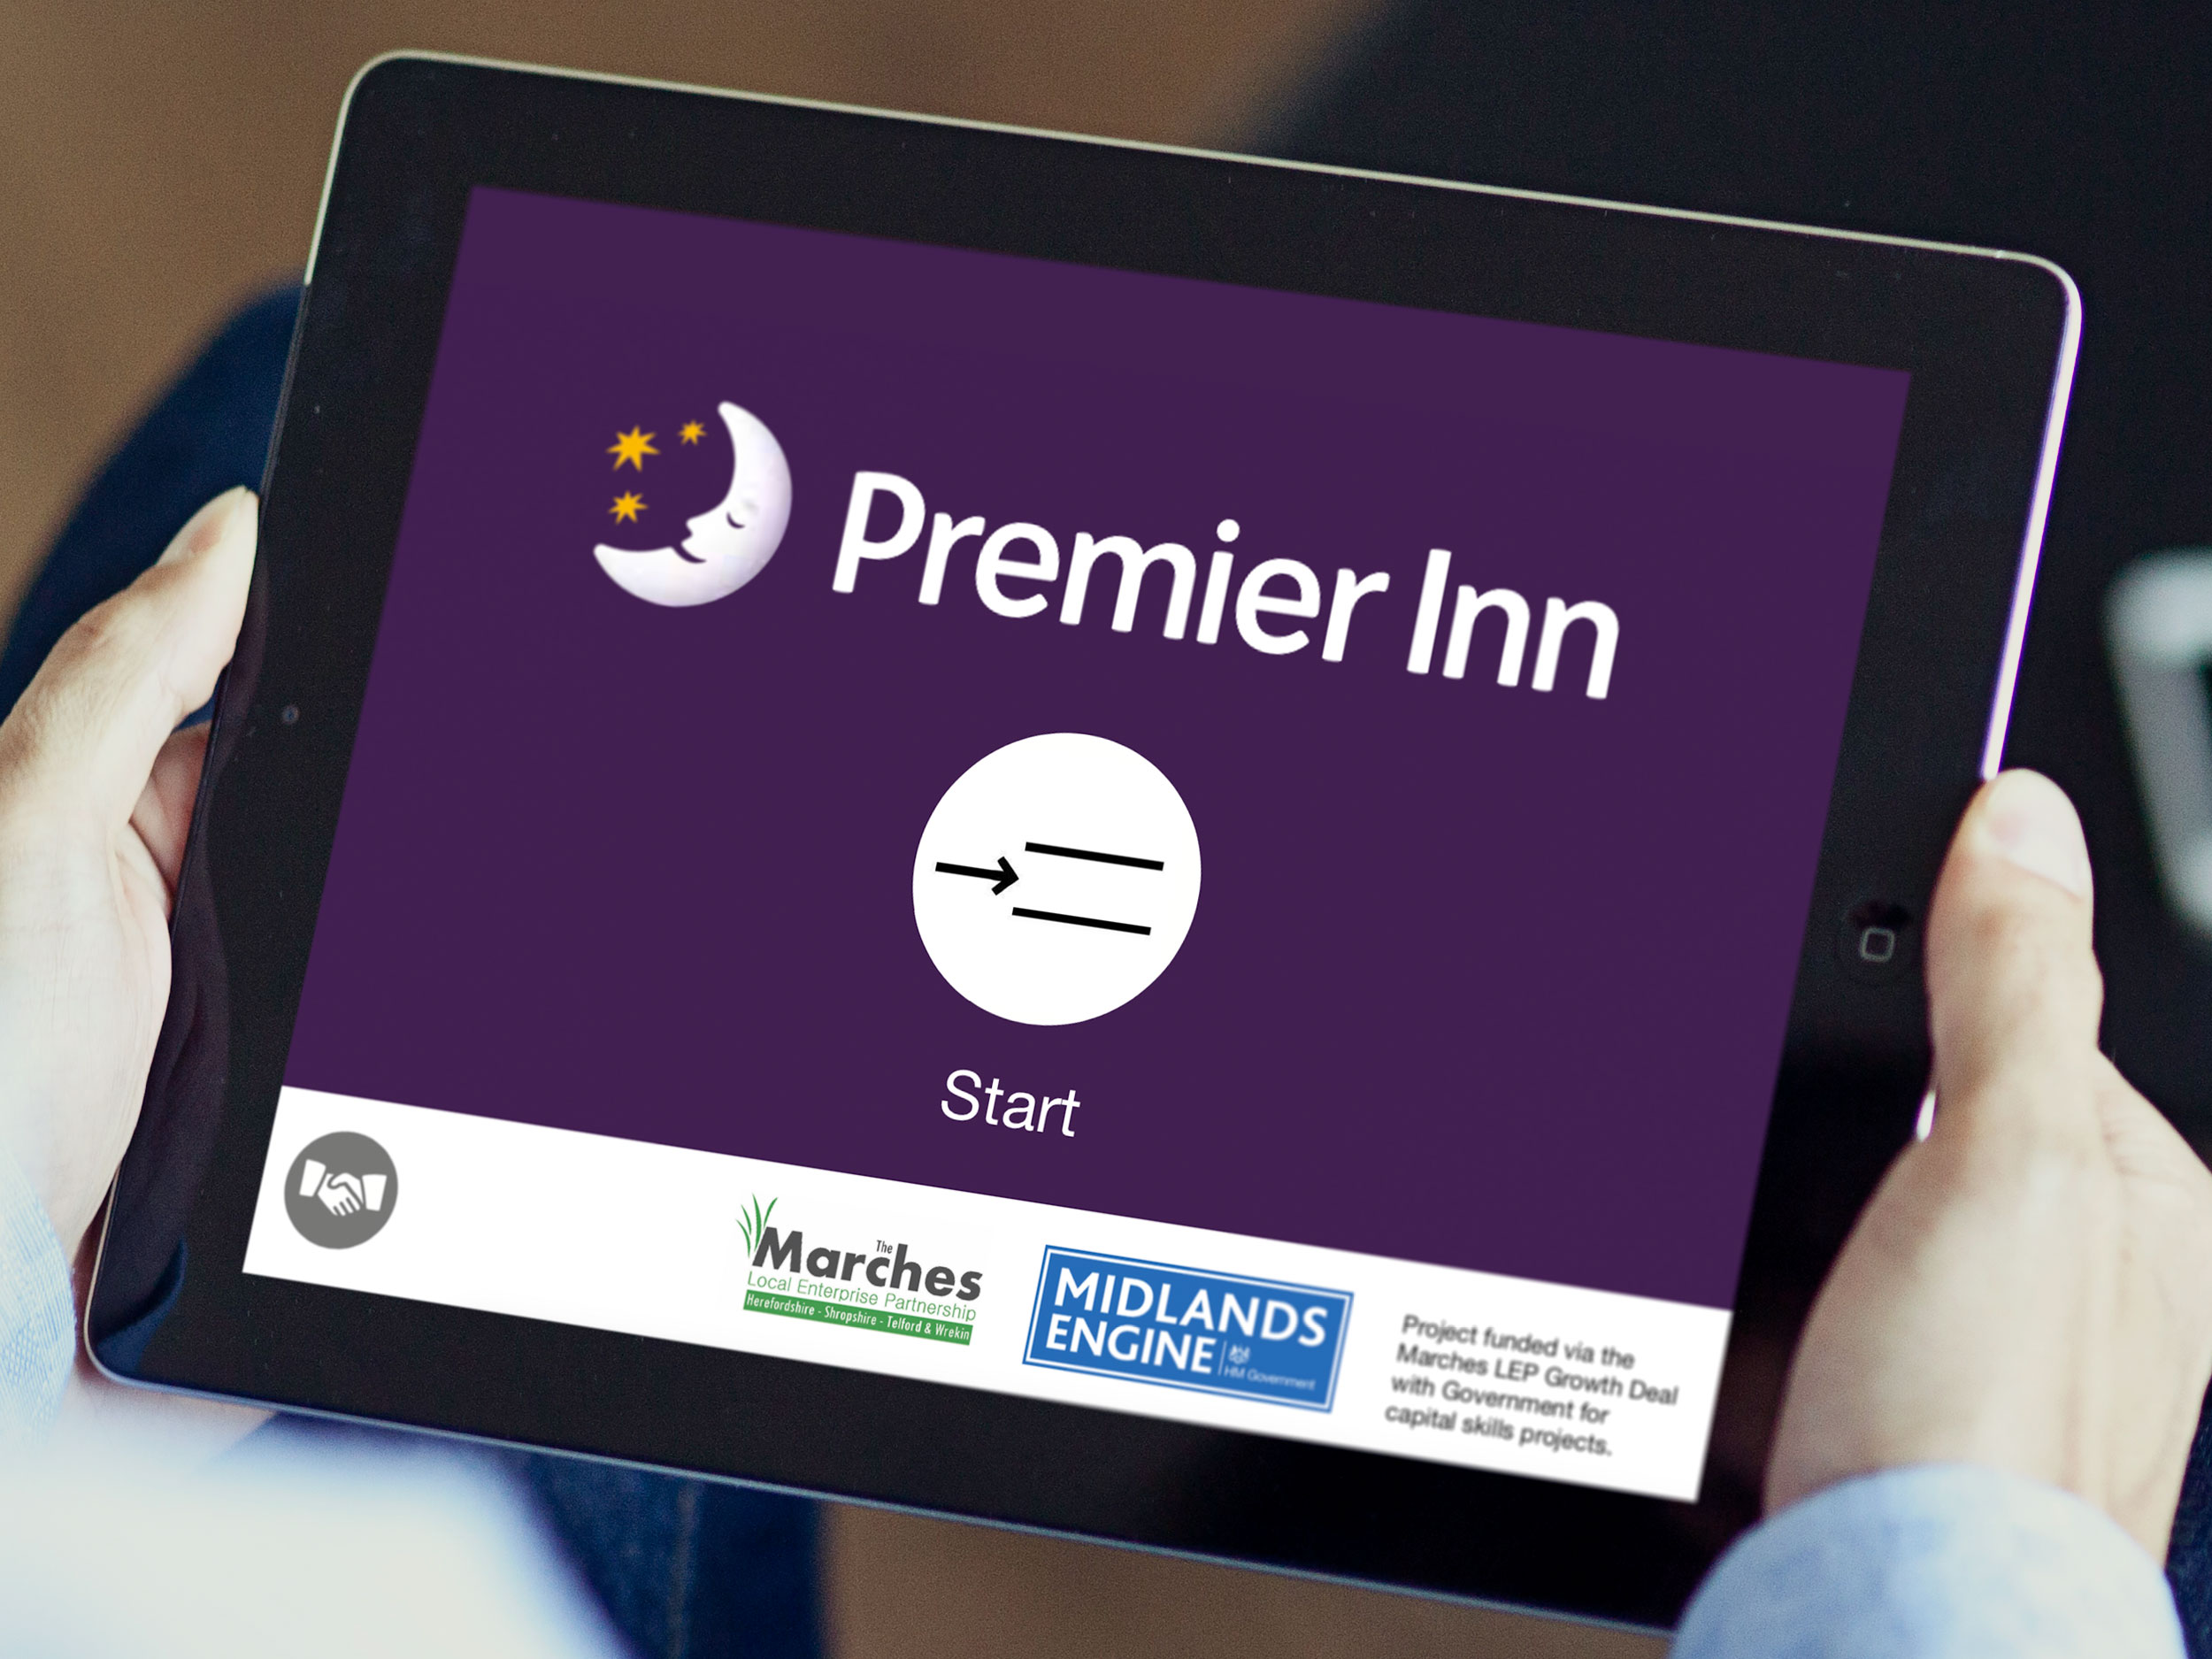 Premier Inn Training App